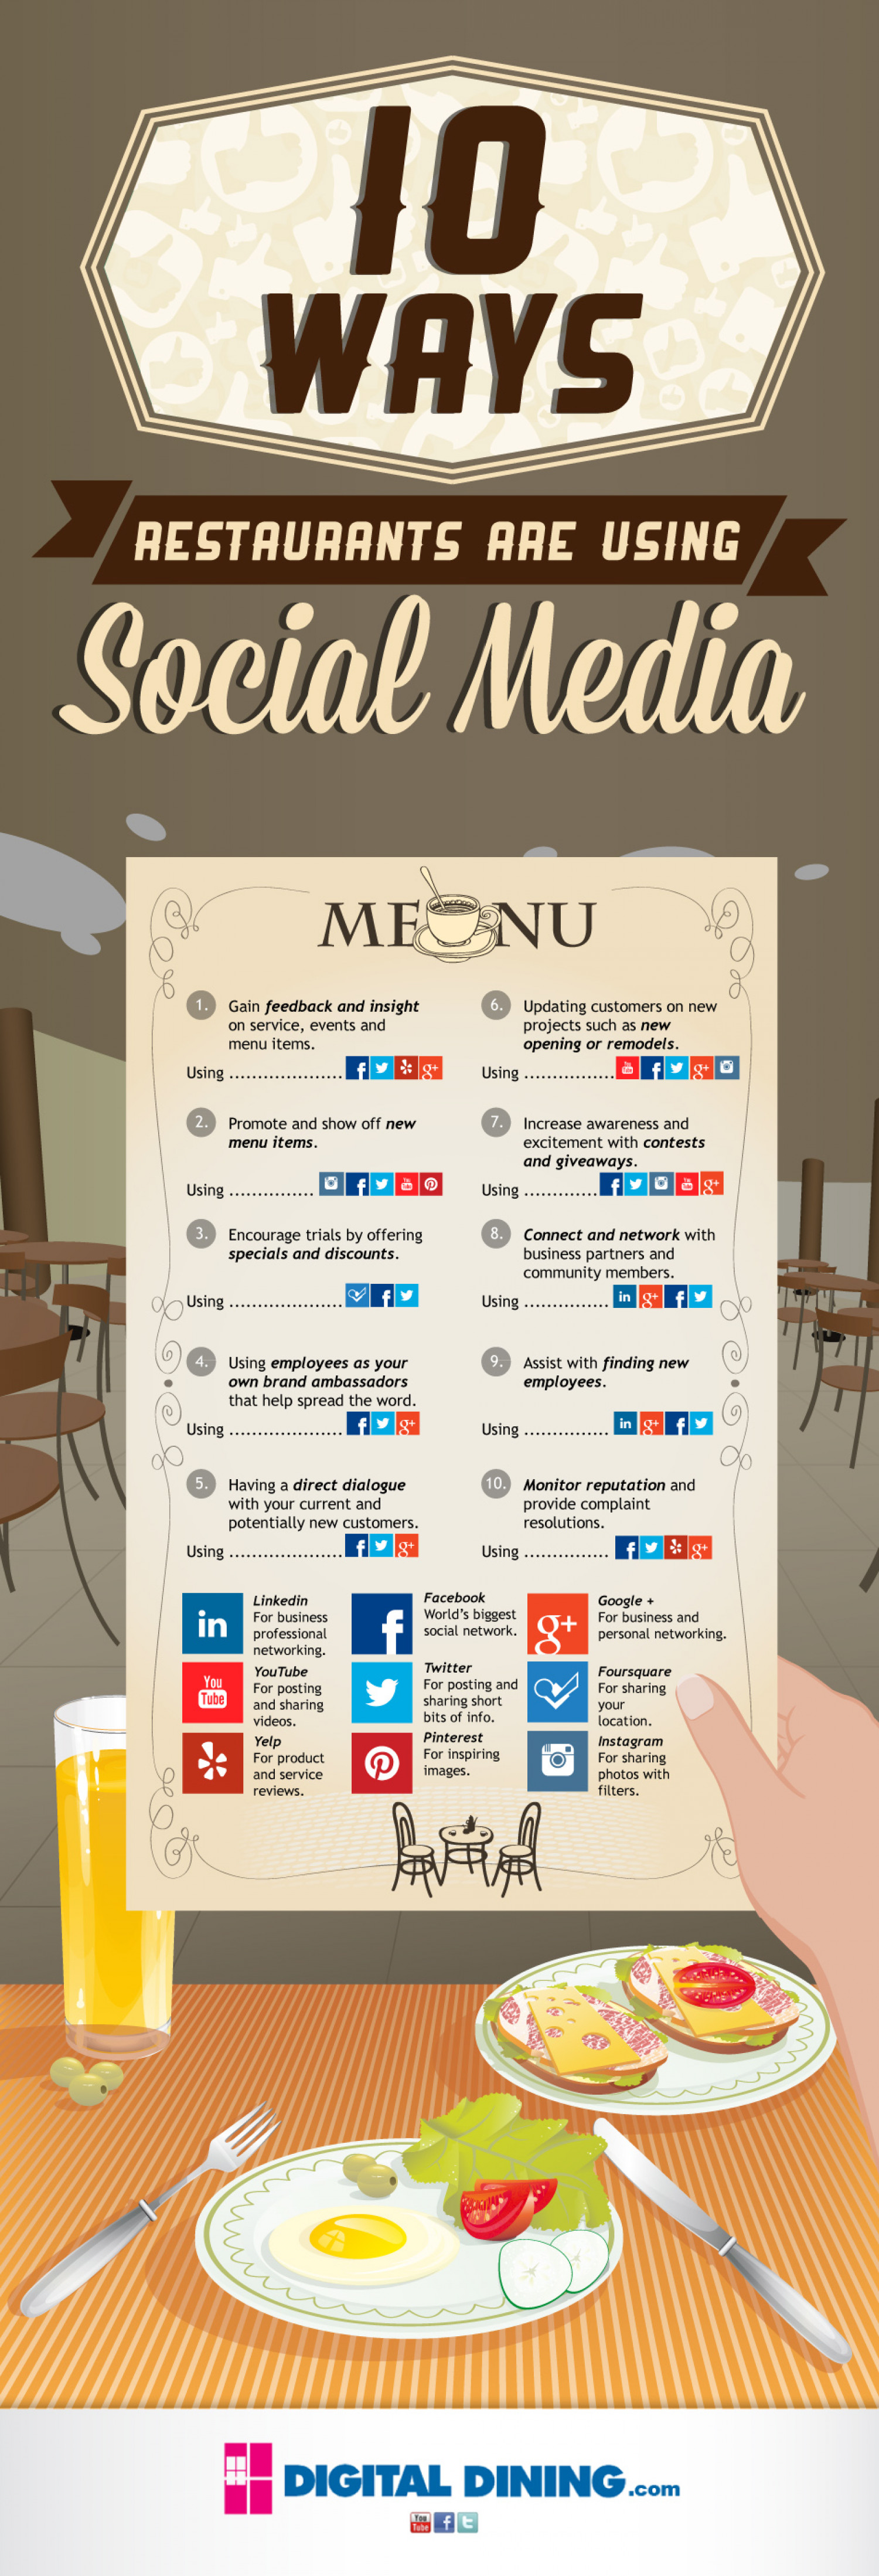 10 Ways Restaurants are using Social Media Infographic